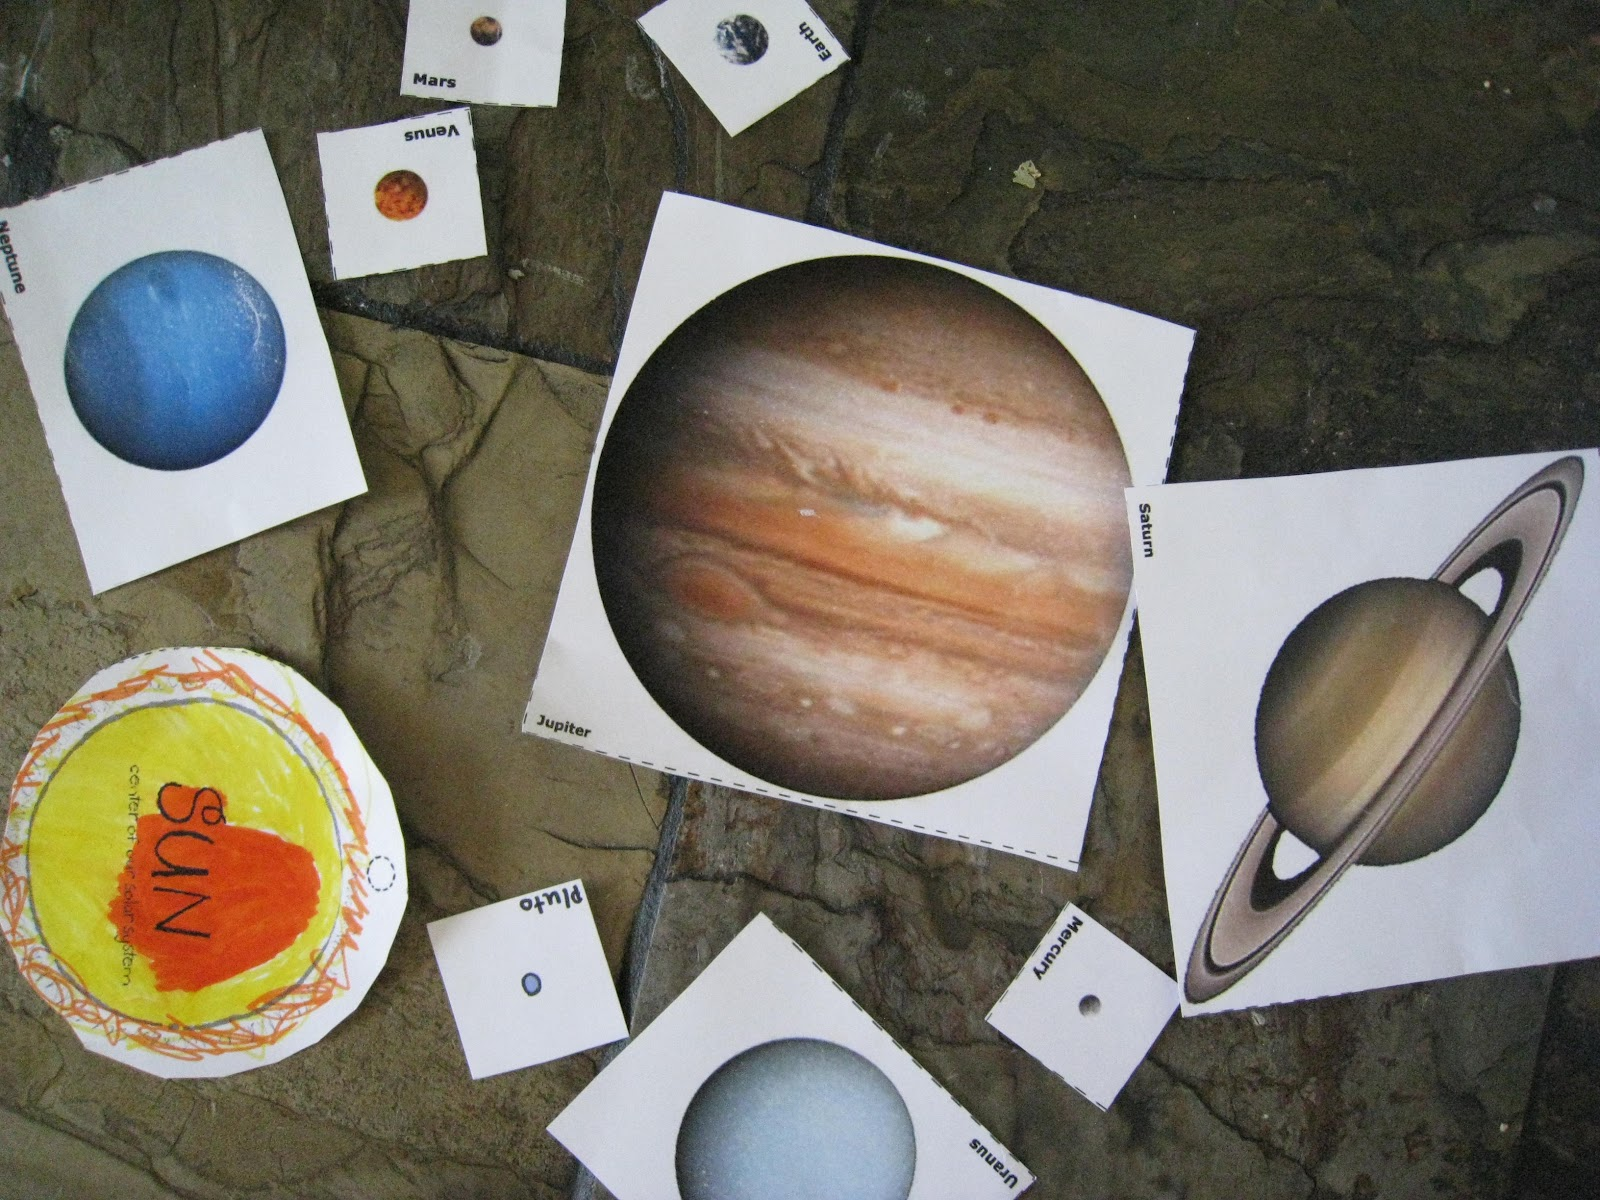 graphic about Printable Planets to Scale titled Location Gadget for Little ones Practice Beside Me